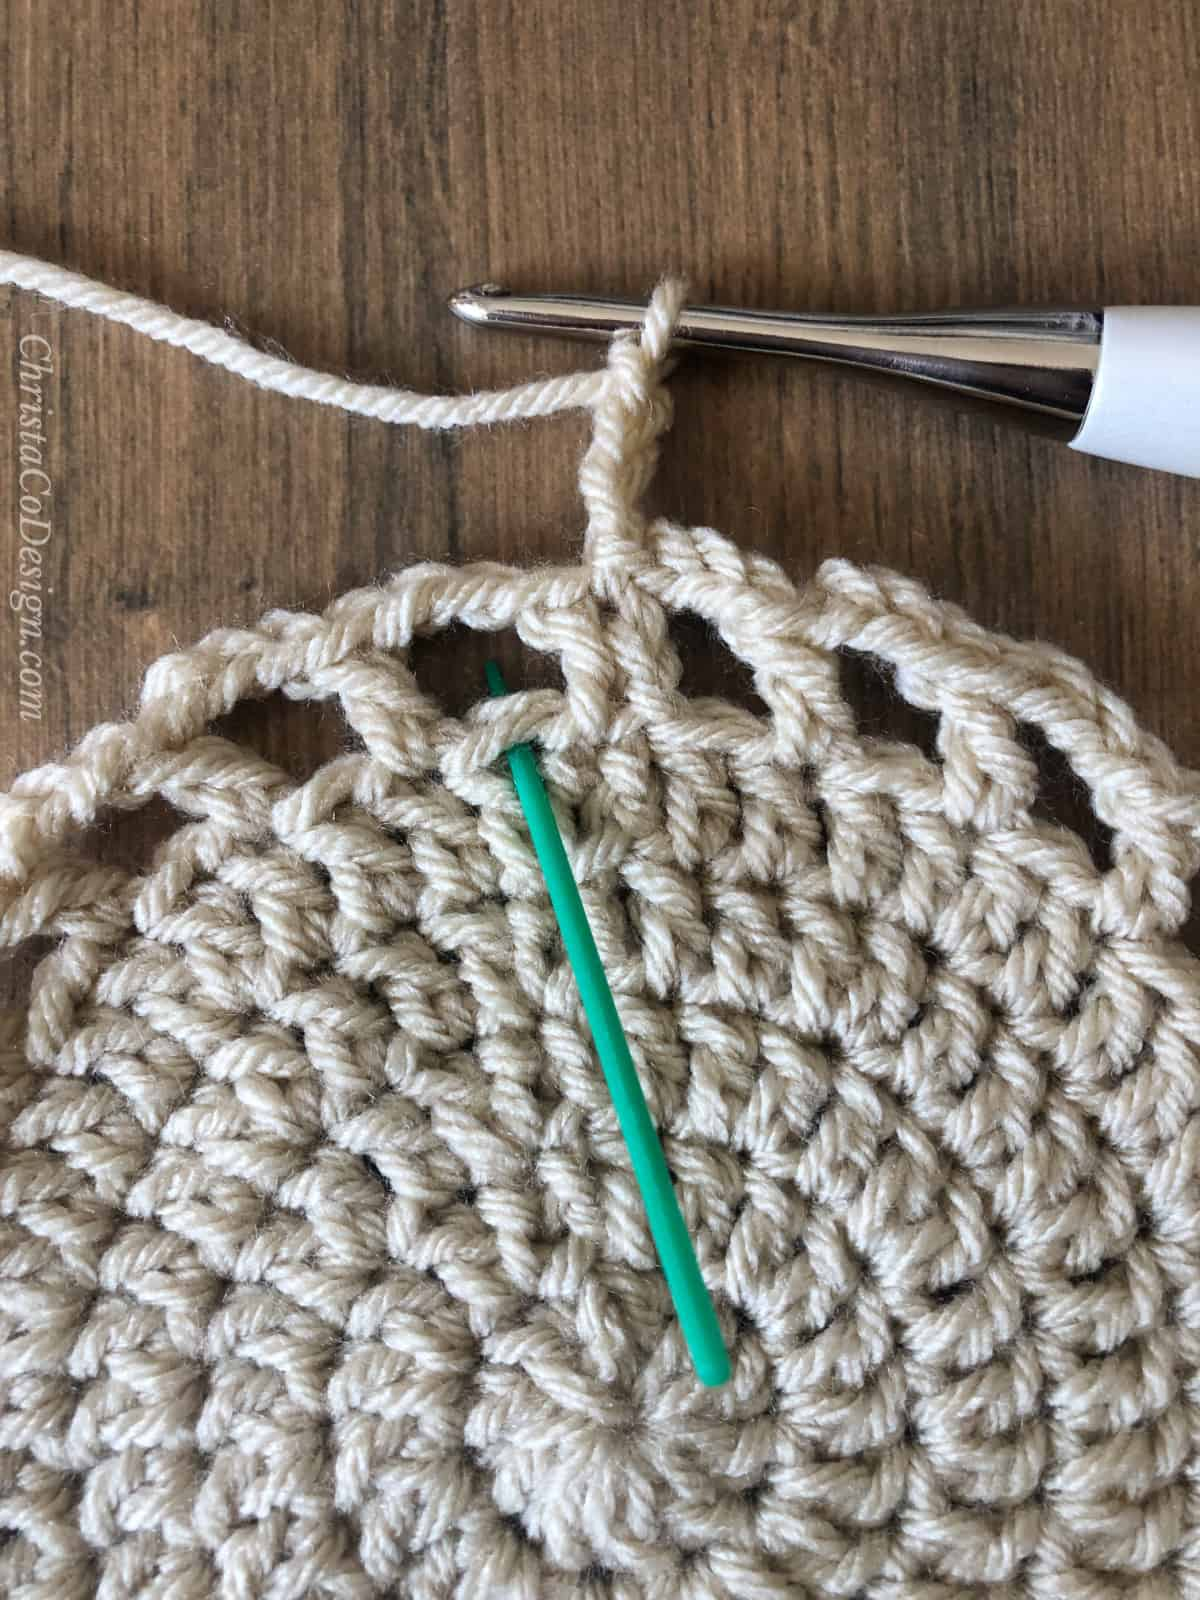 Green yarn needle pointing to stitch.